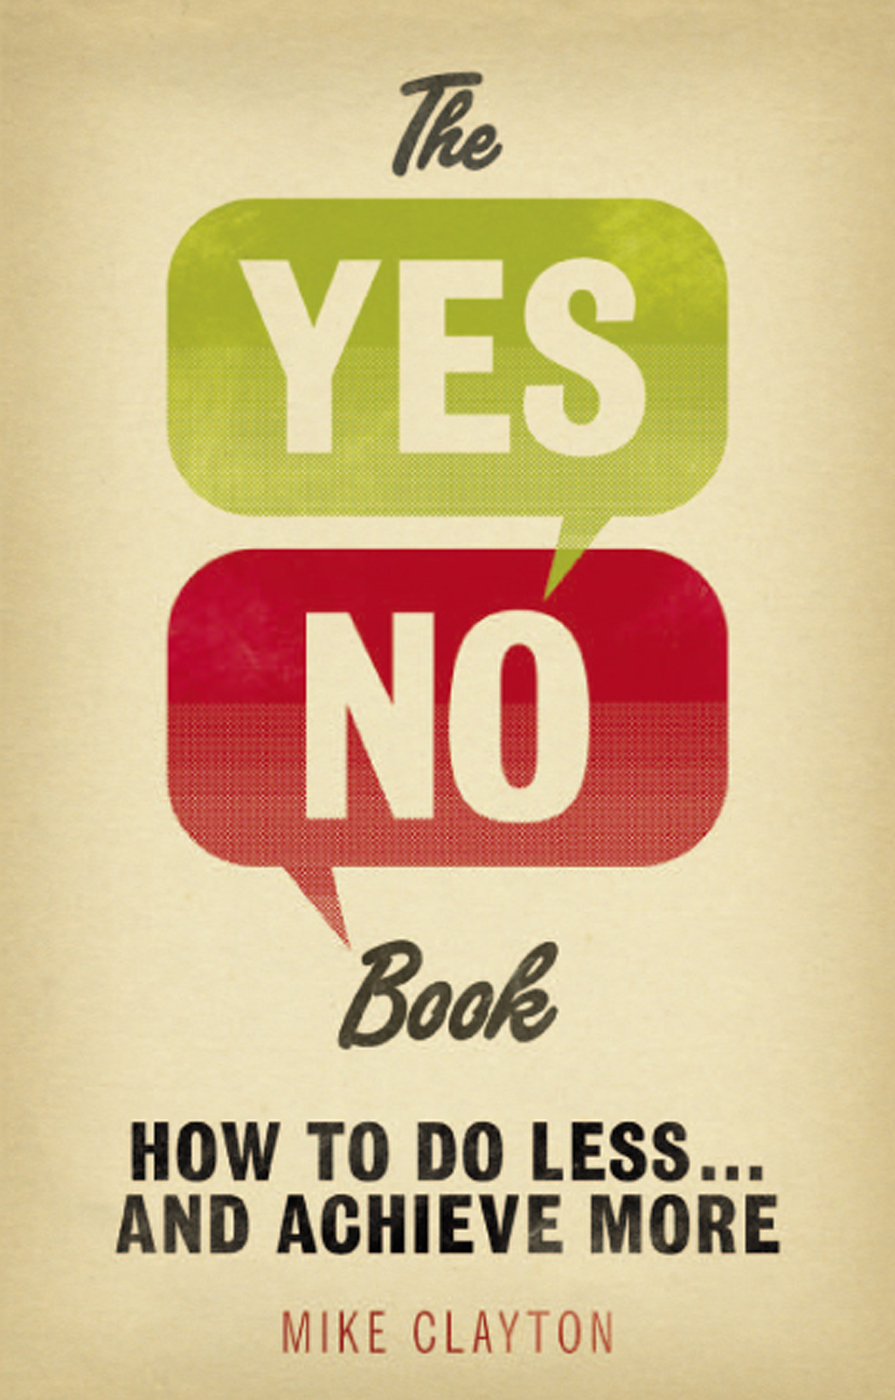 The Yes/No Book How to Do Less? and Achieve More!